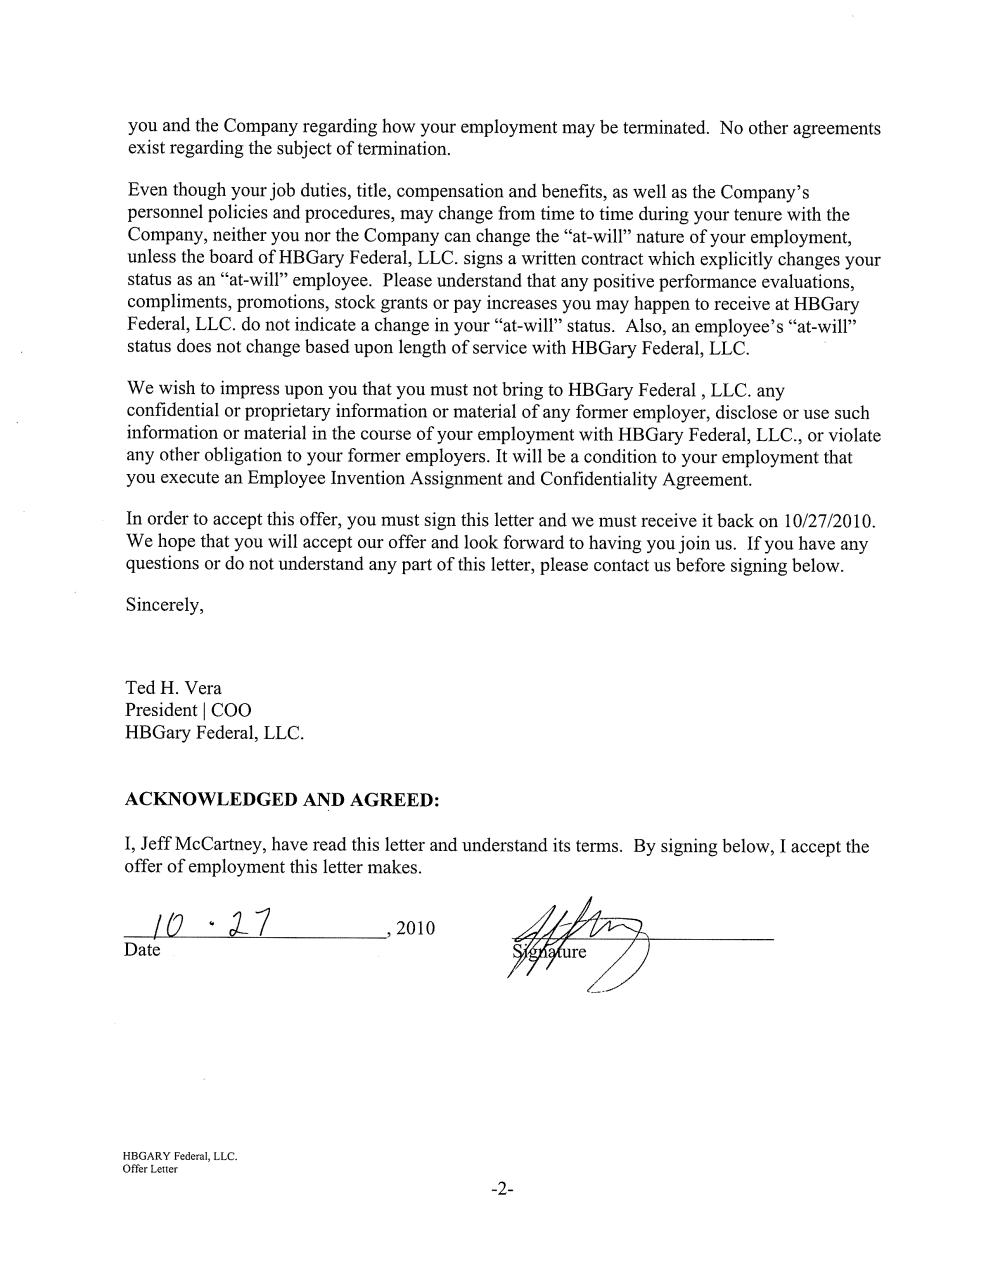 Contingent Offer of Employment Jeff McCartney jeffcontractpdf